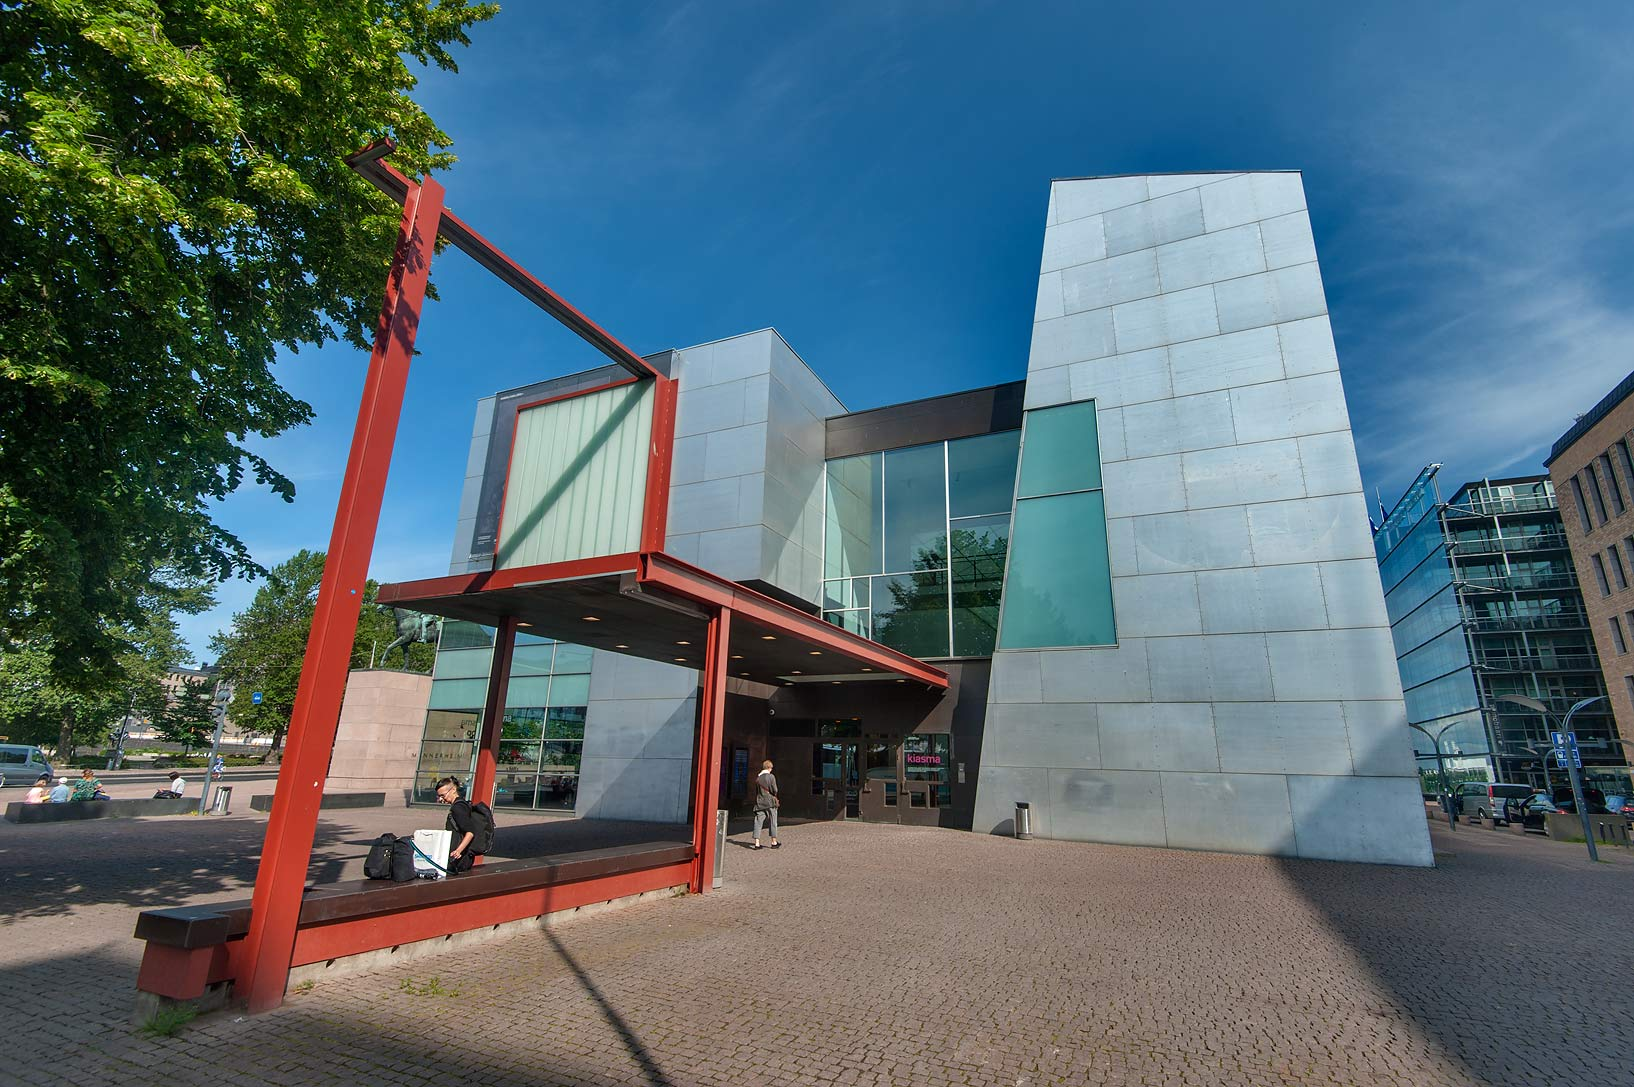 Museum of Contemporary Art Kiasma (built 1993-1998). Helsinki, Finland